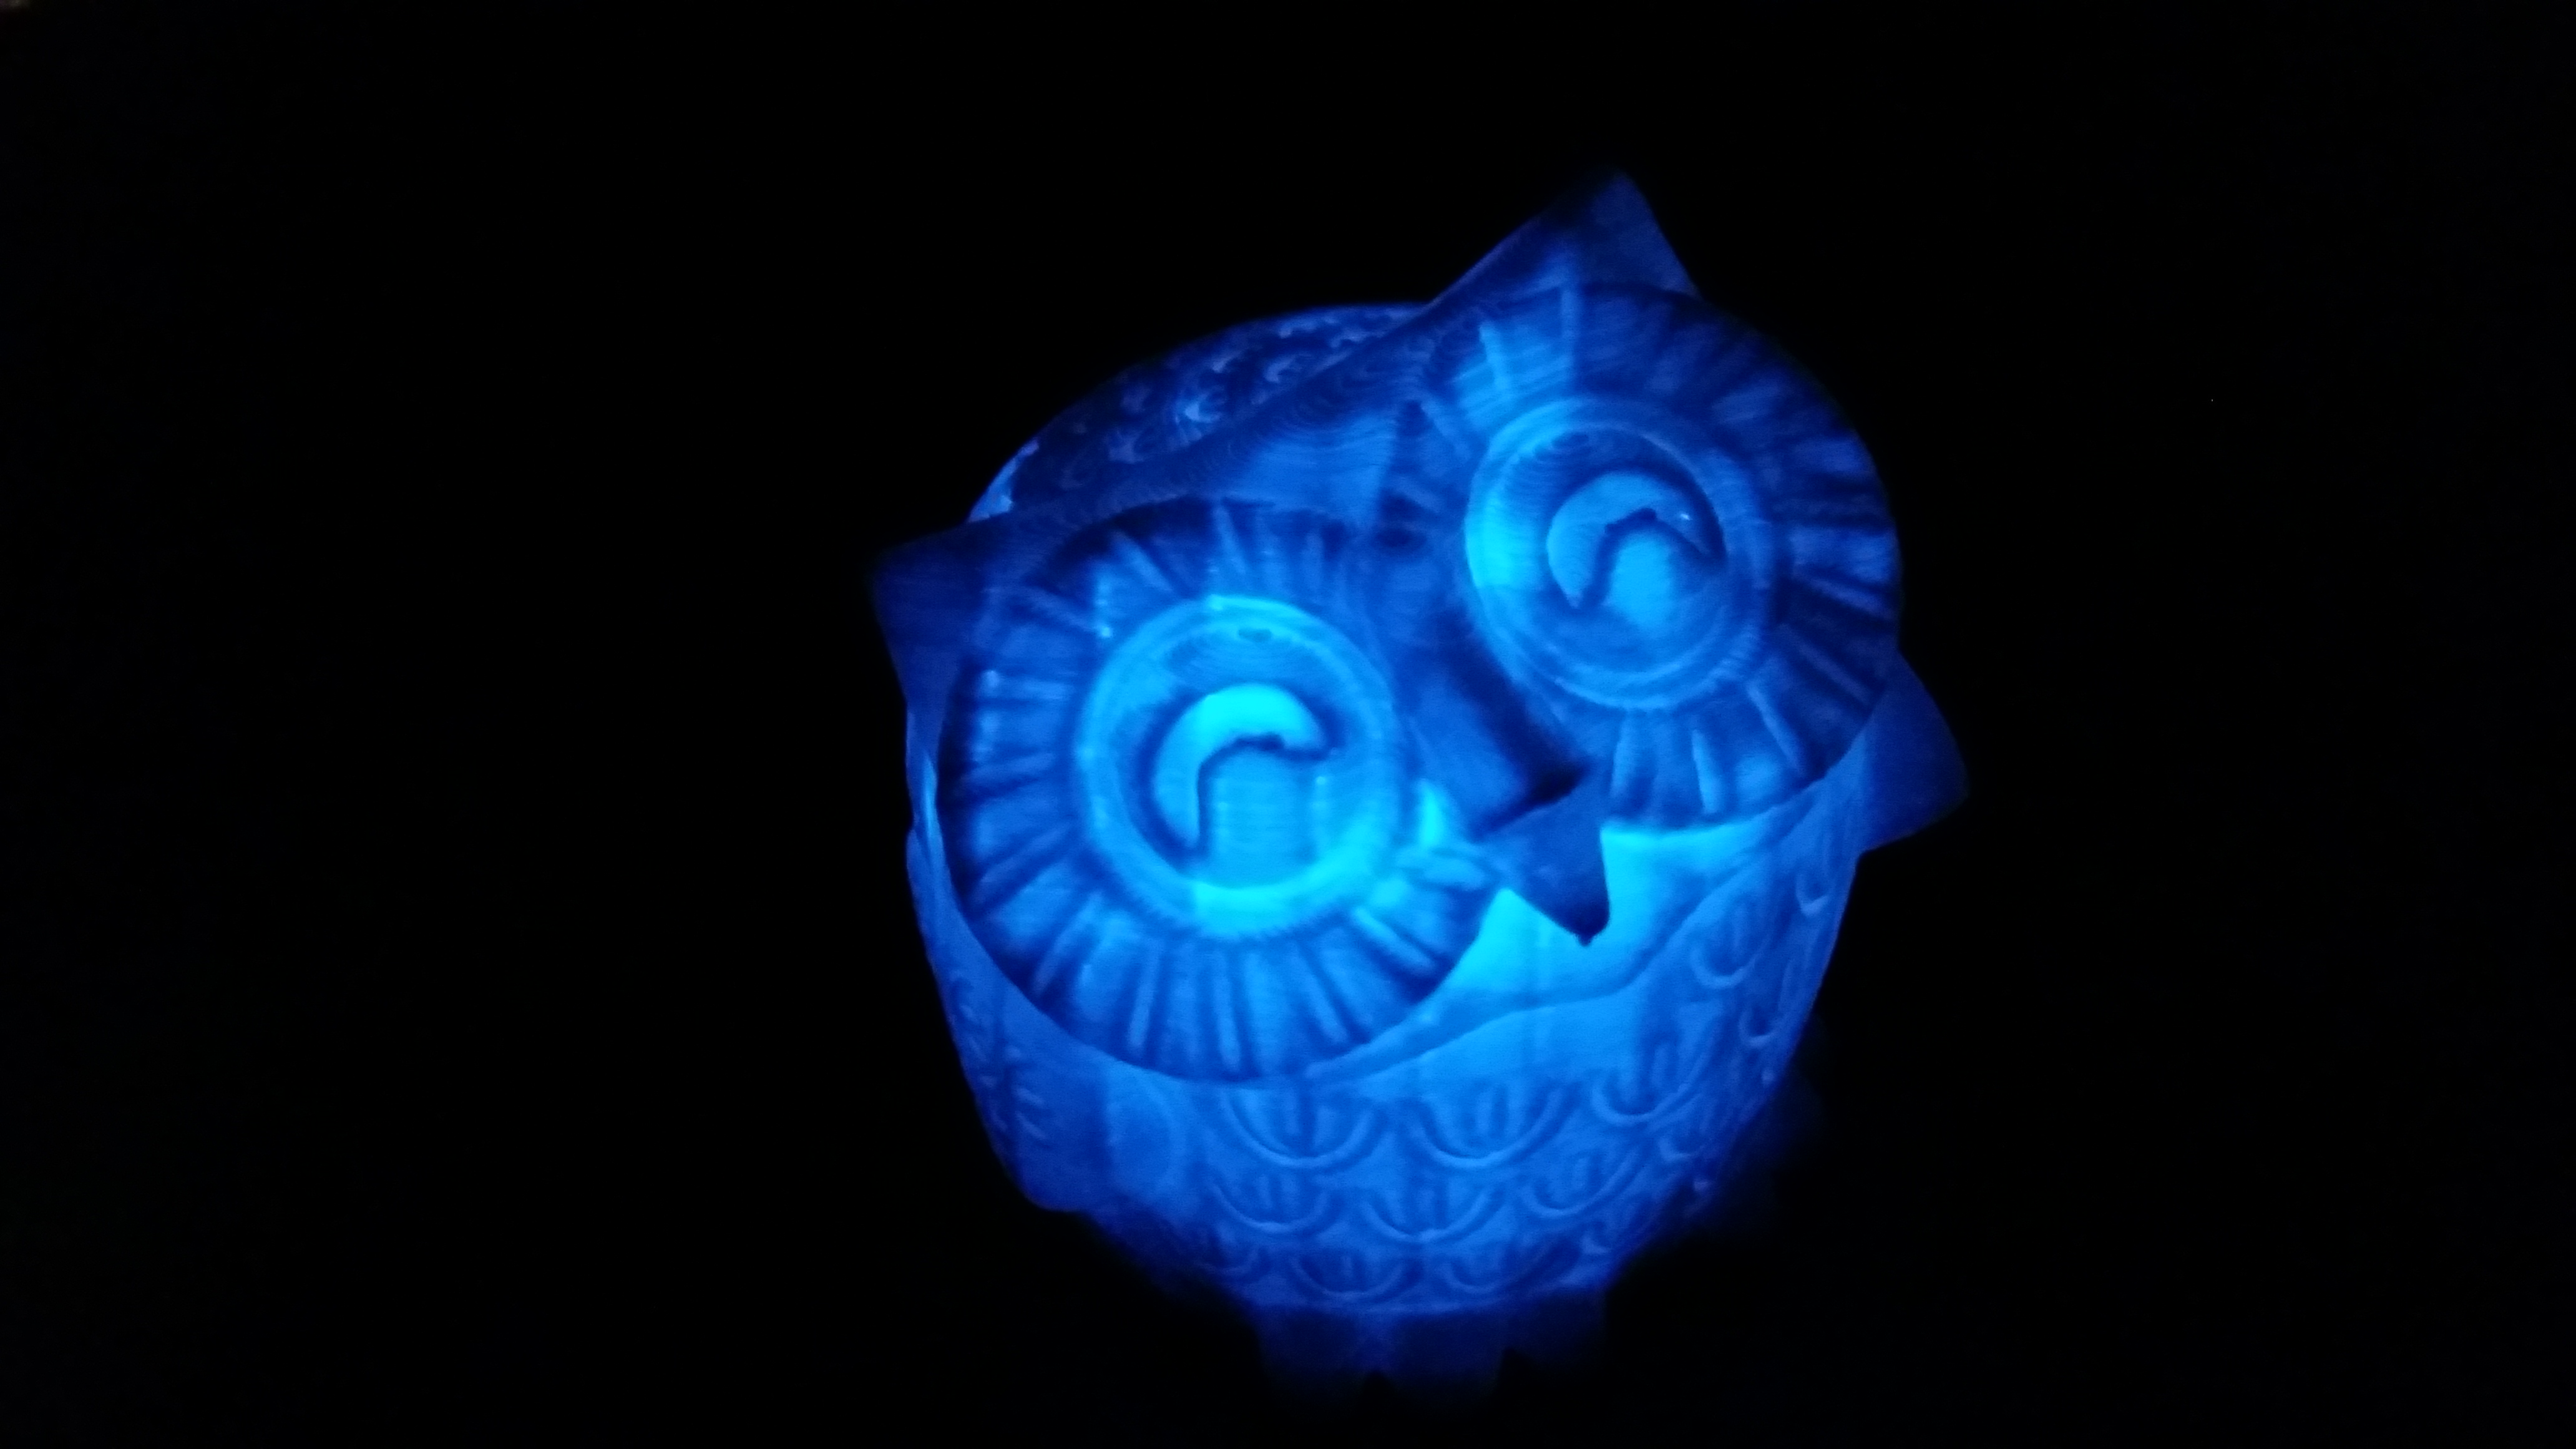 The blue owlantern in the dark